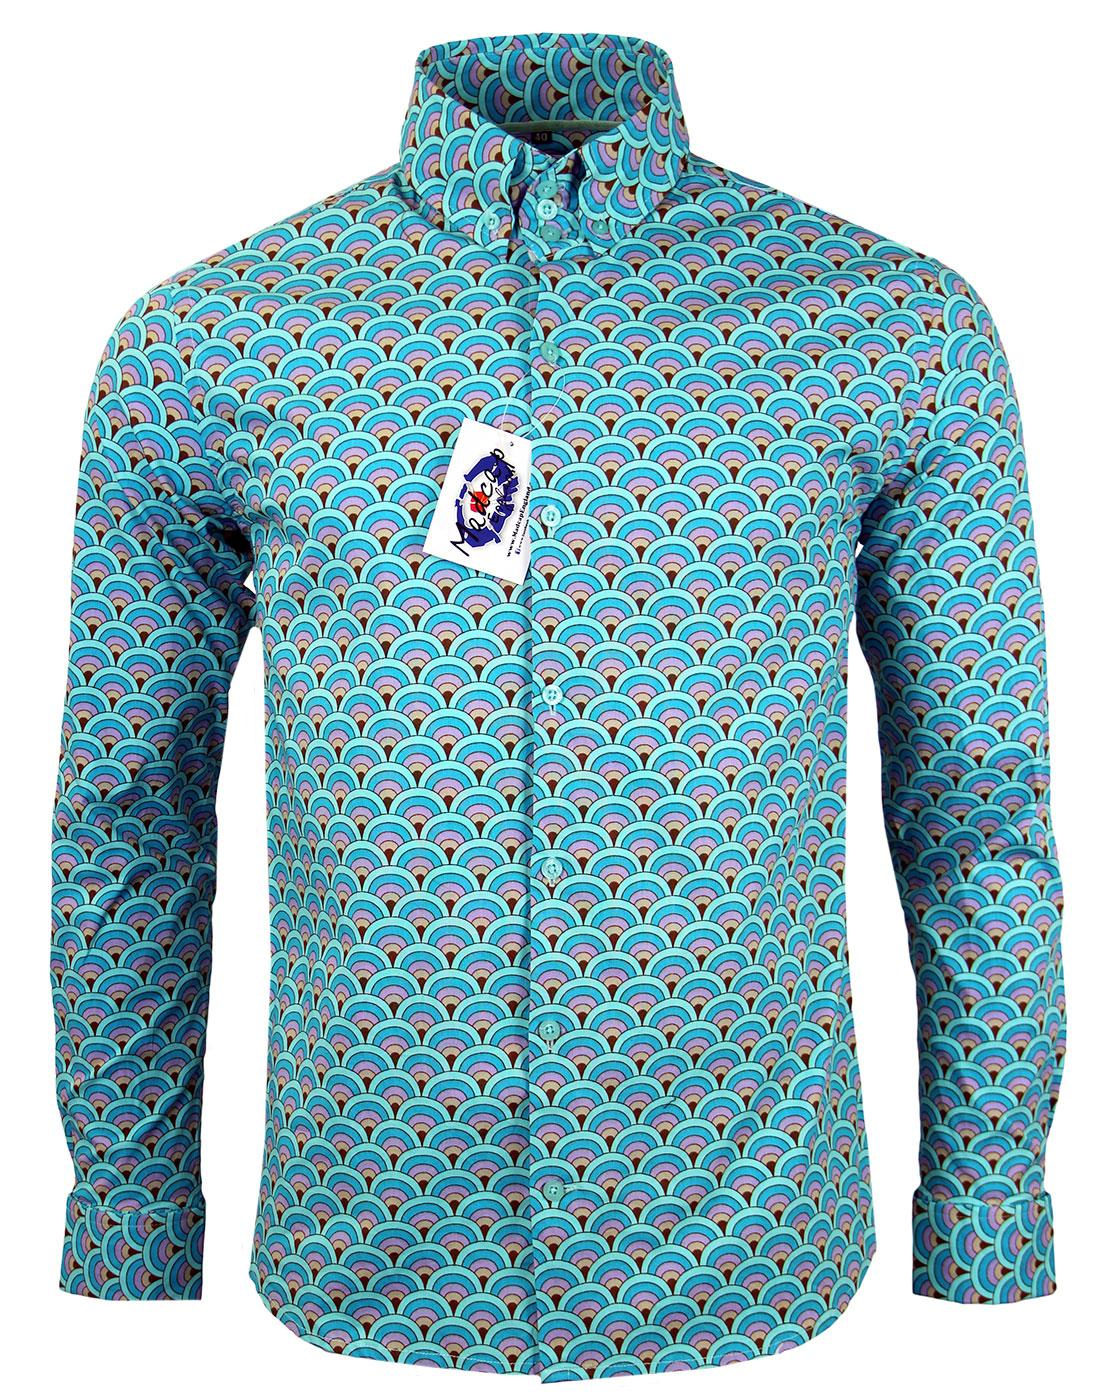 Peacock MADCAP ENGLAND Mod Indie Peacock Fan Shirt